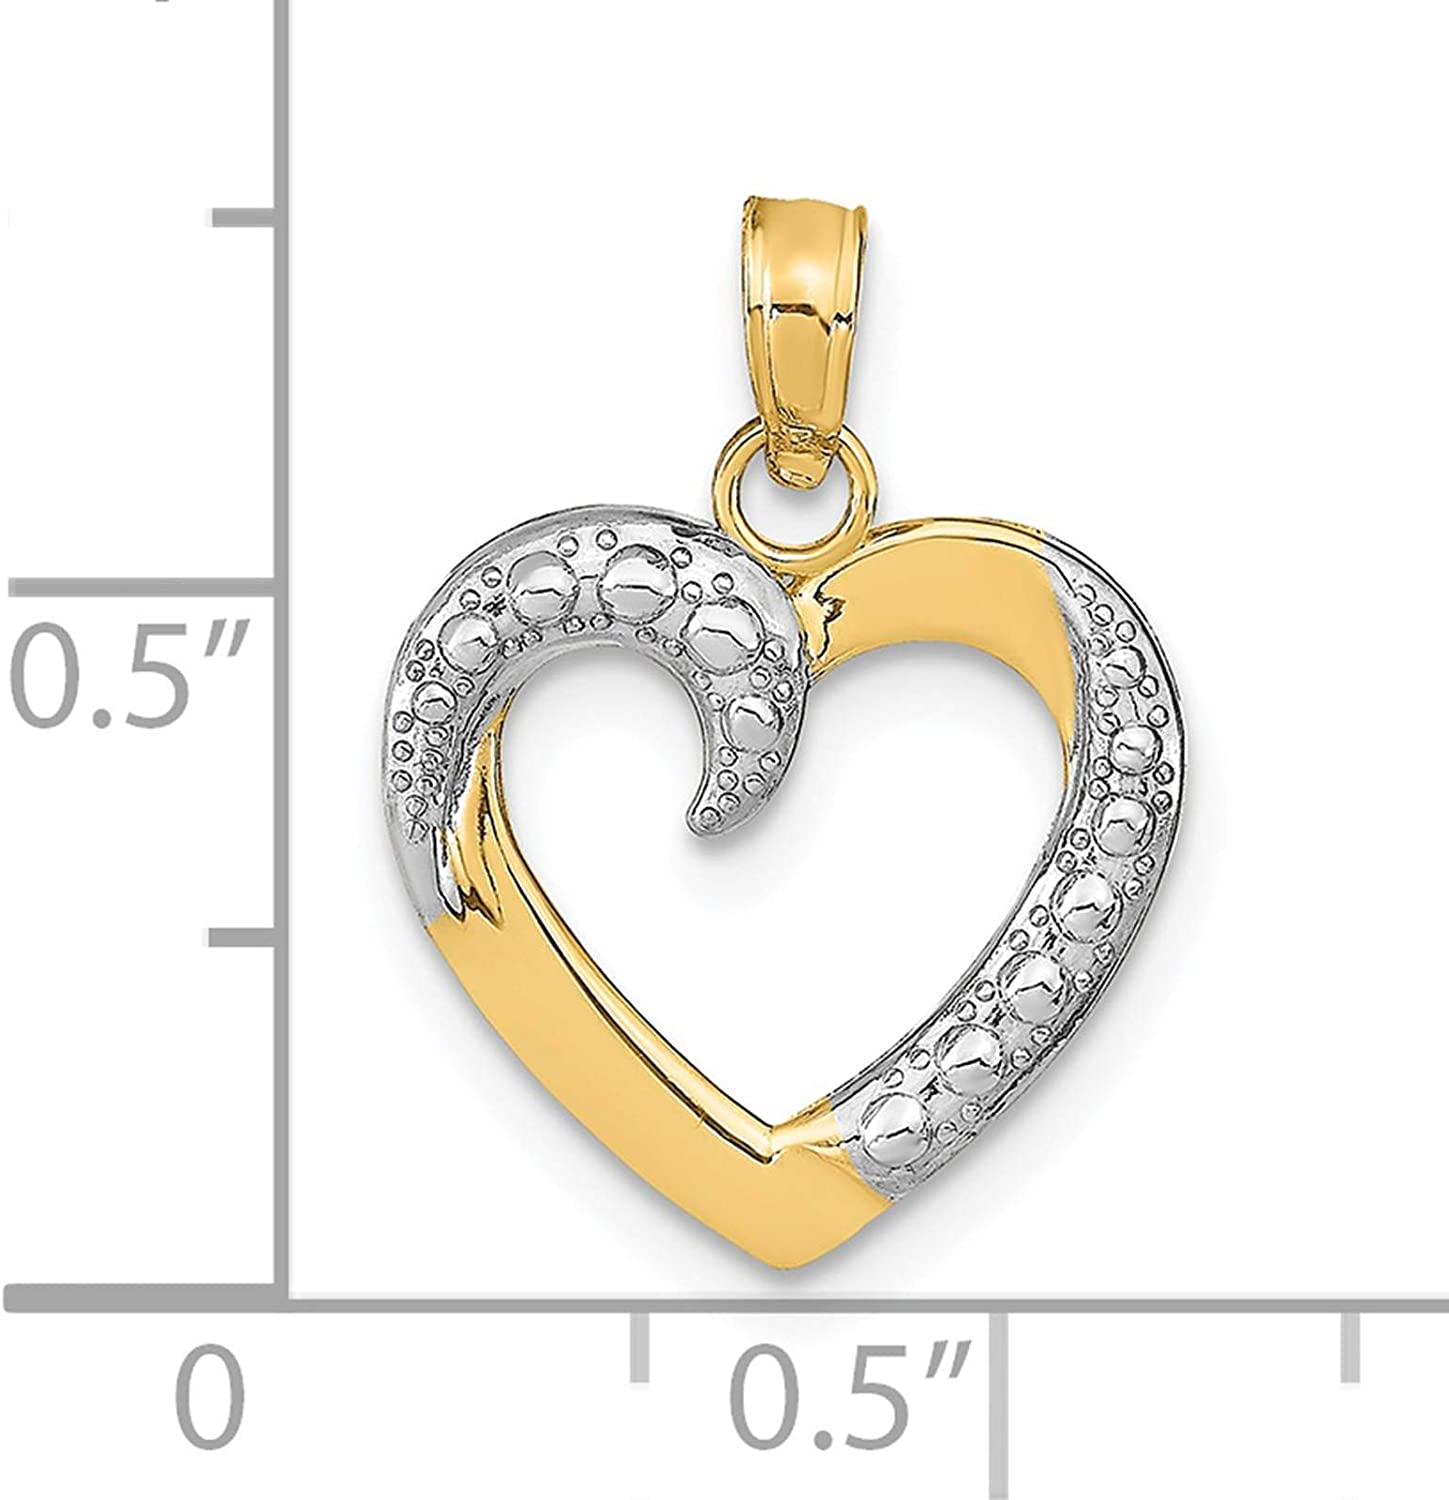 14K Yellow Gold /& Rhodium-plated Polished /& Textured Heart Charm Pendant